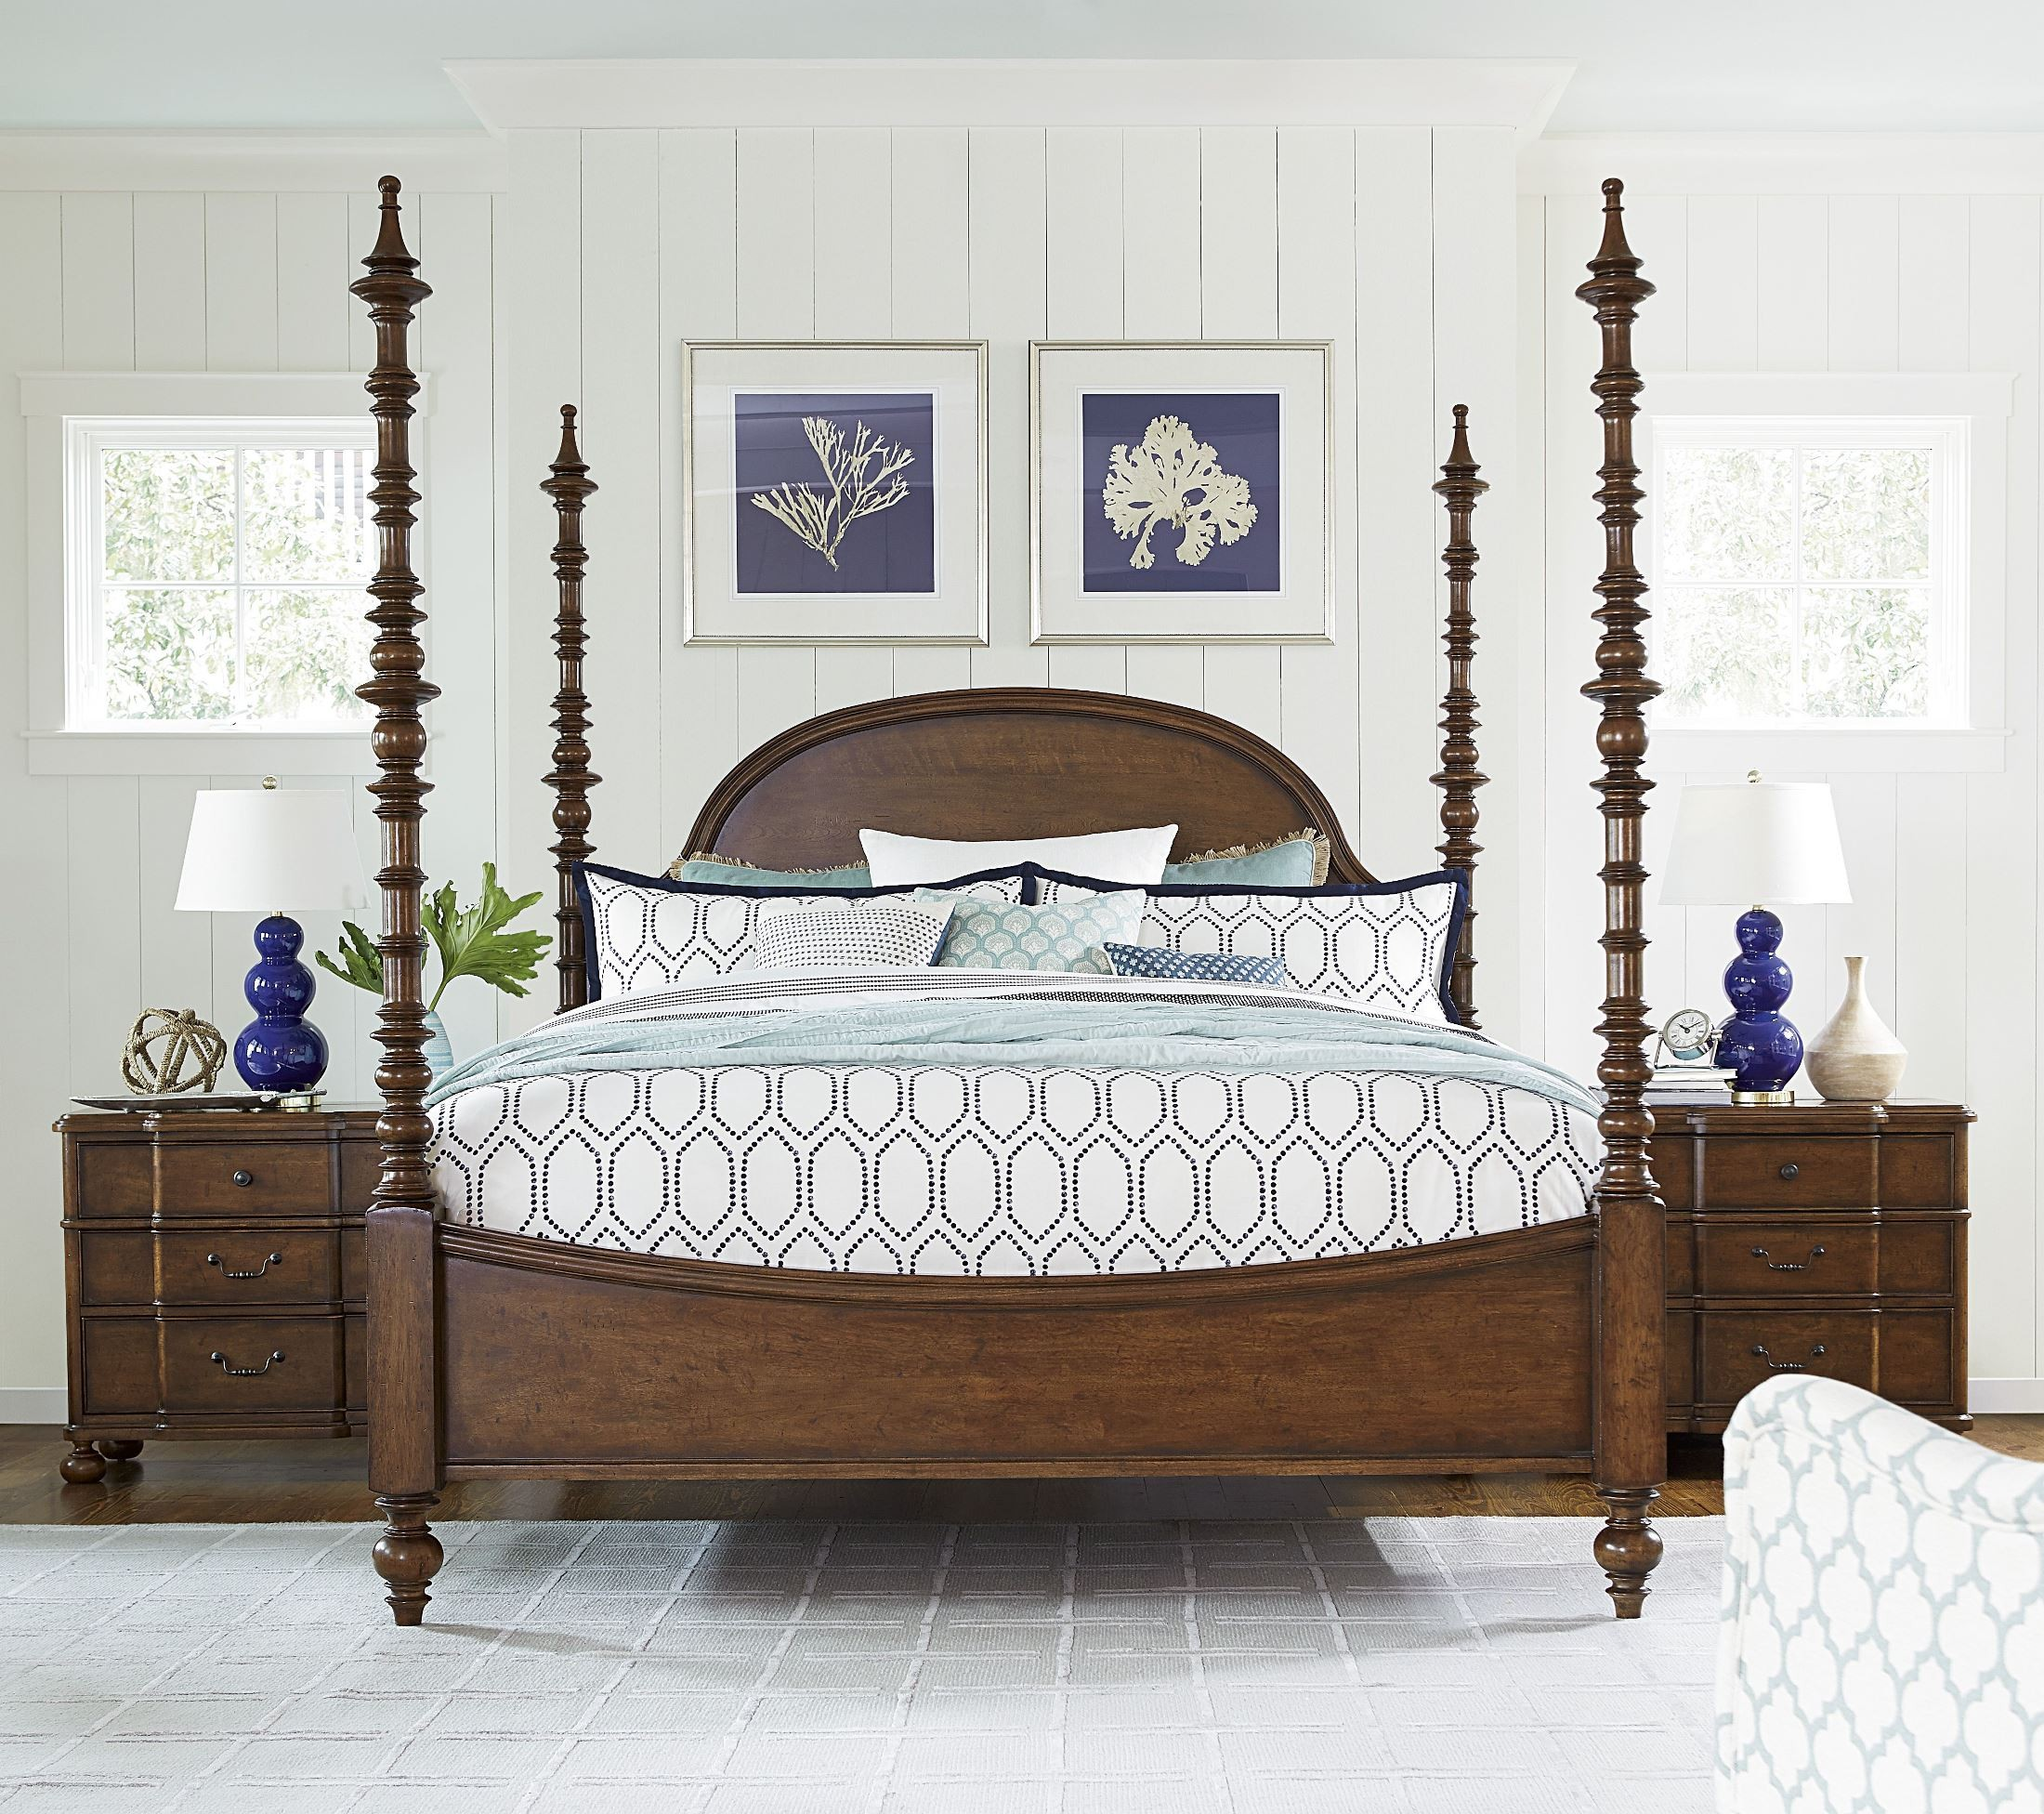 Dogwood Low Tide Bed End Bench From Paula Deen 596380